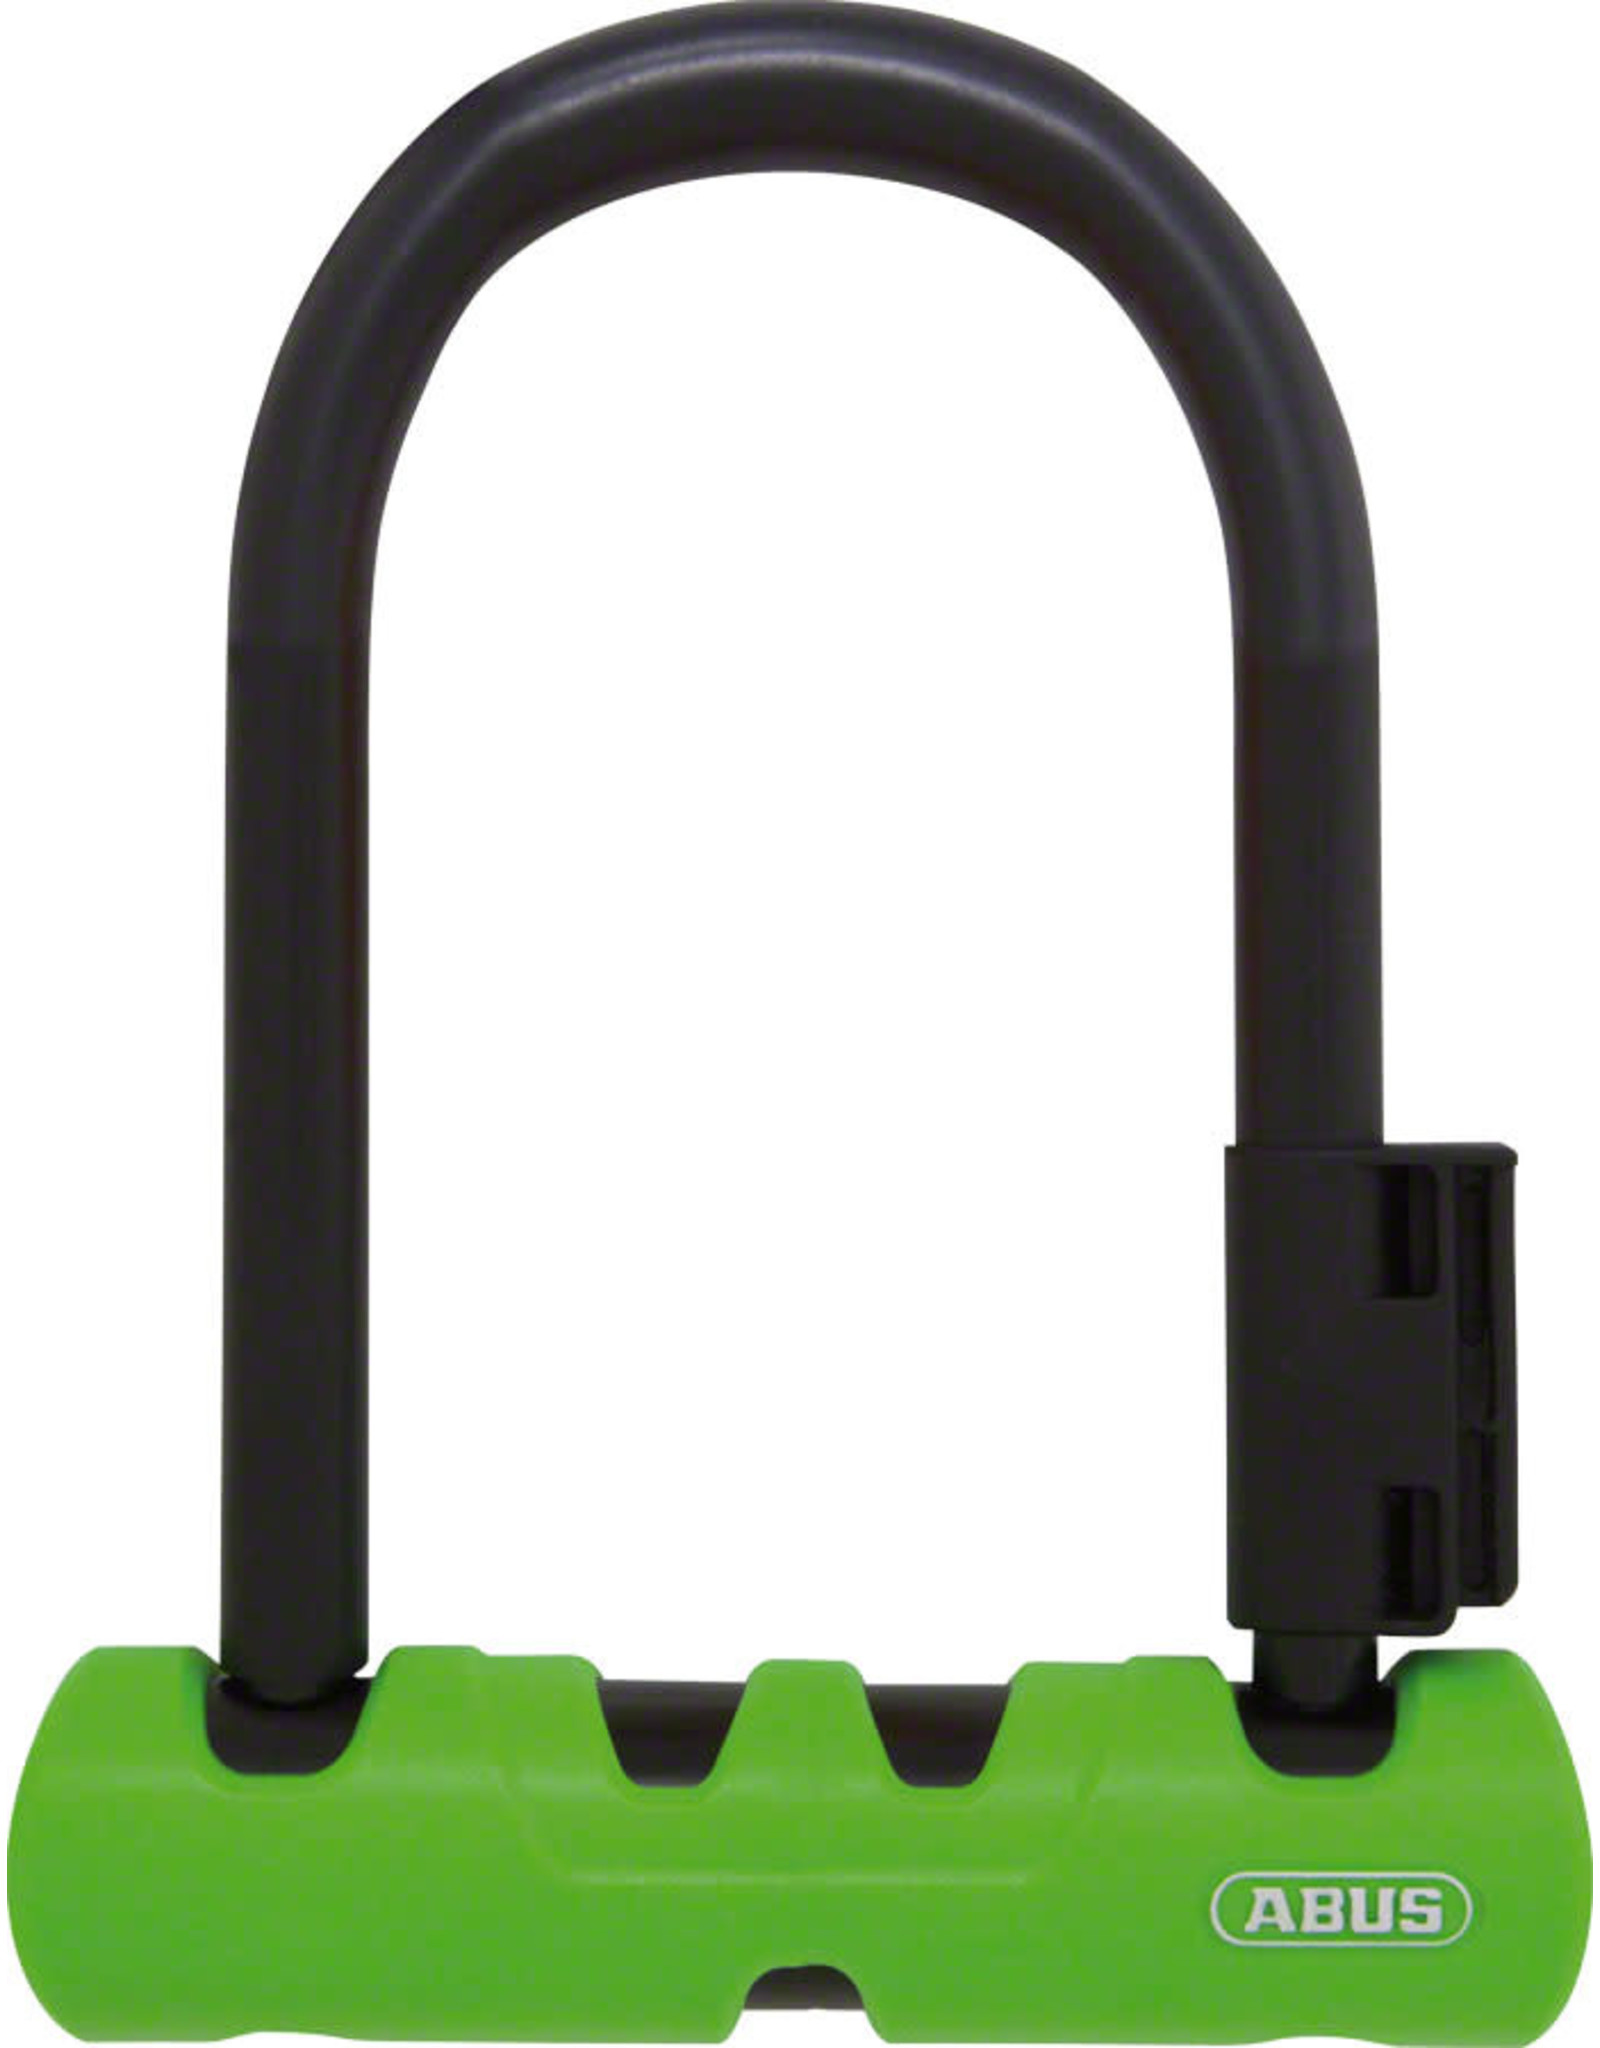 "ABUS ABUS Keyed U-Lock Ultra Mini 410: 5.5"" Shackle, Black"